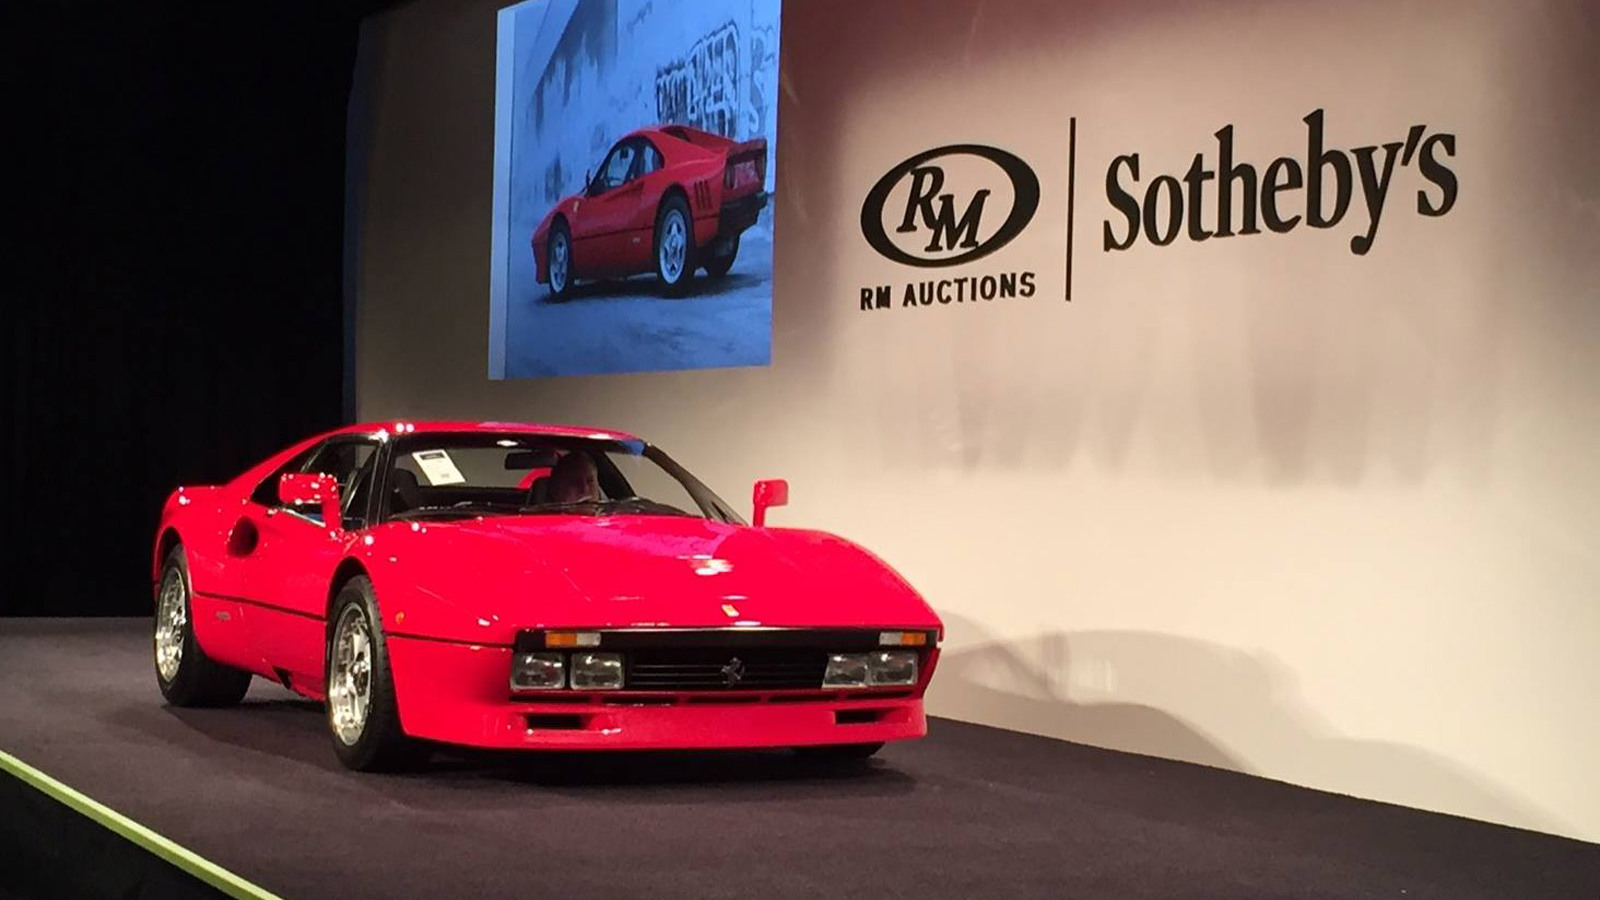 1985 Ferrari 288 GTO sells for $2,420,000